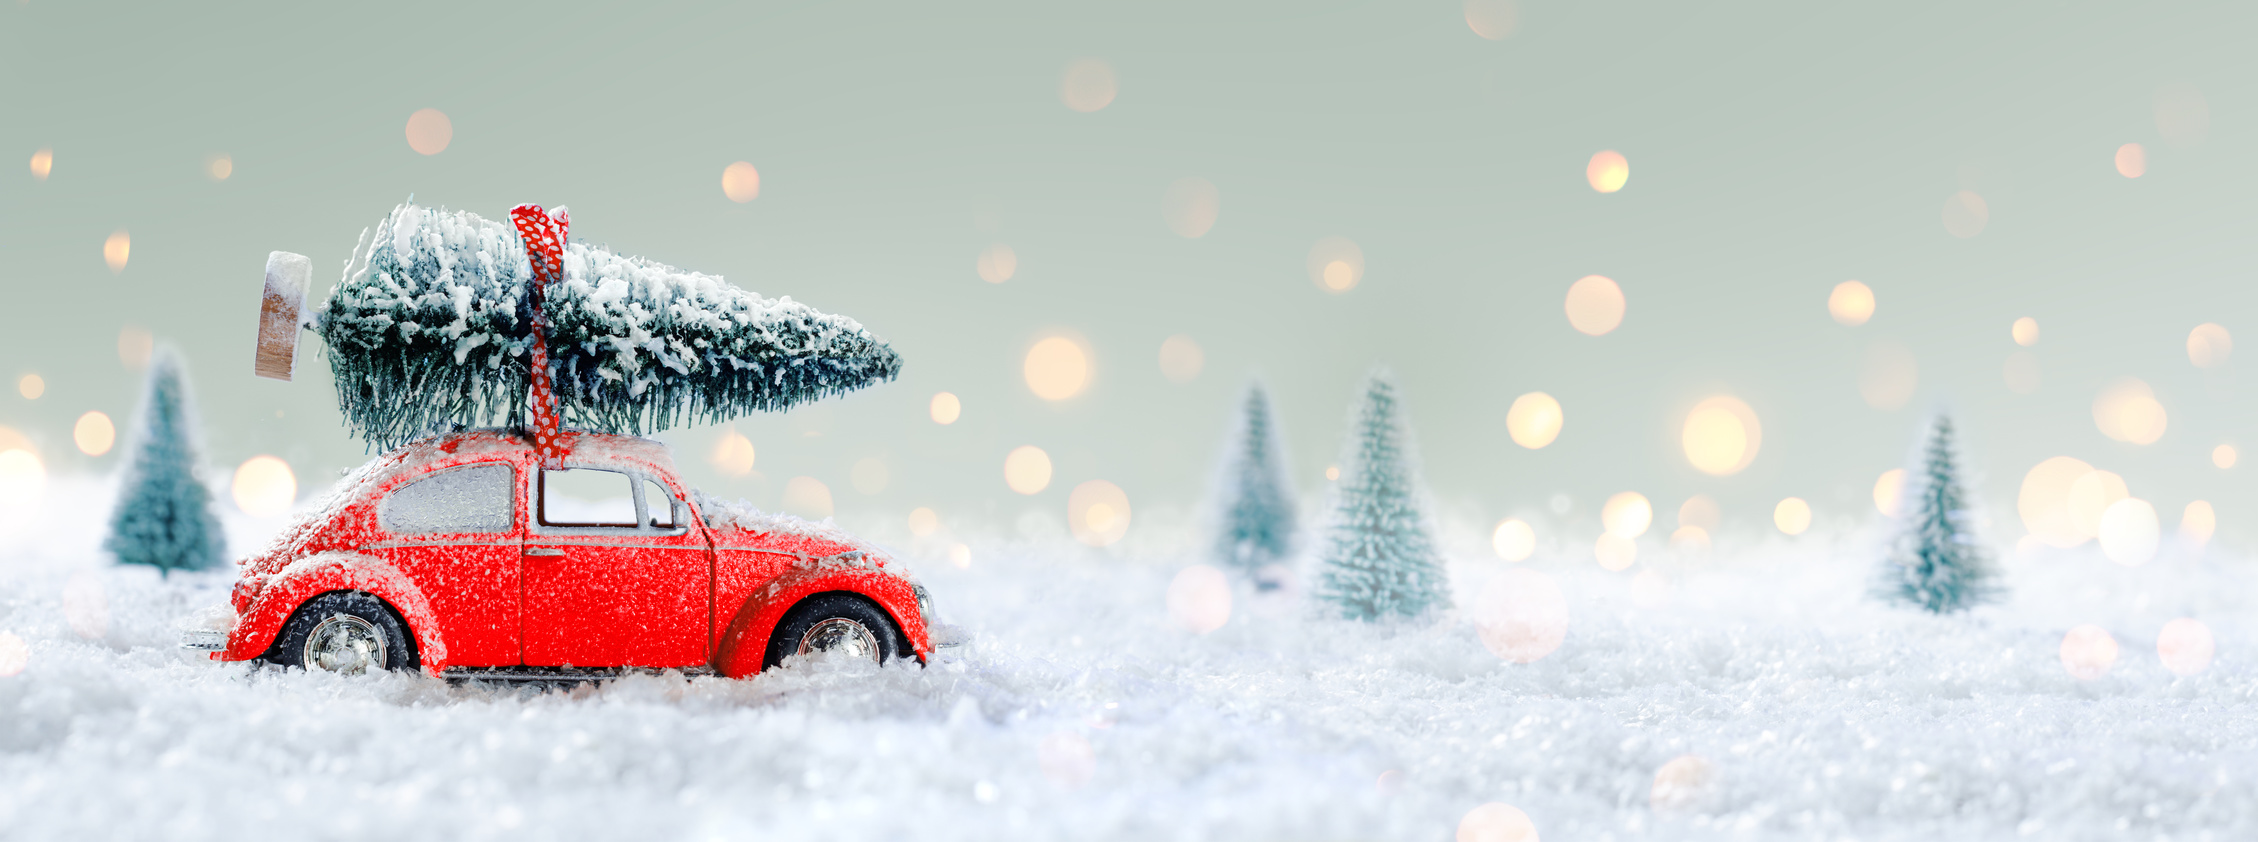 A red car carries a tree through snow.